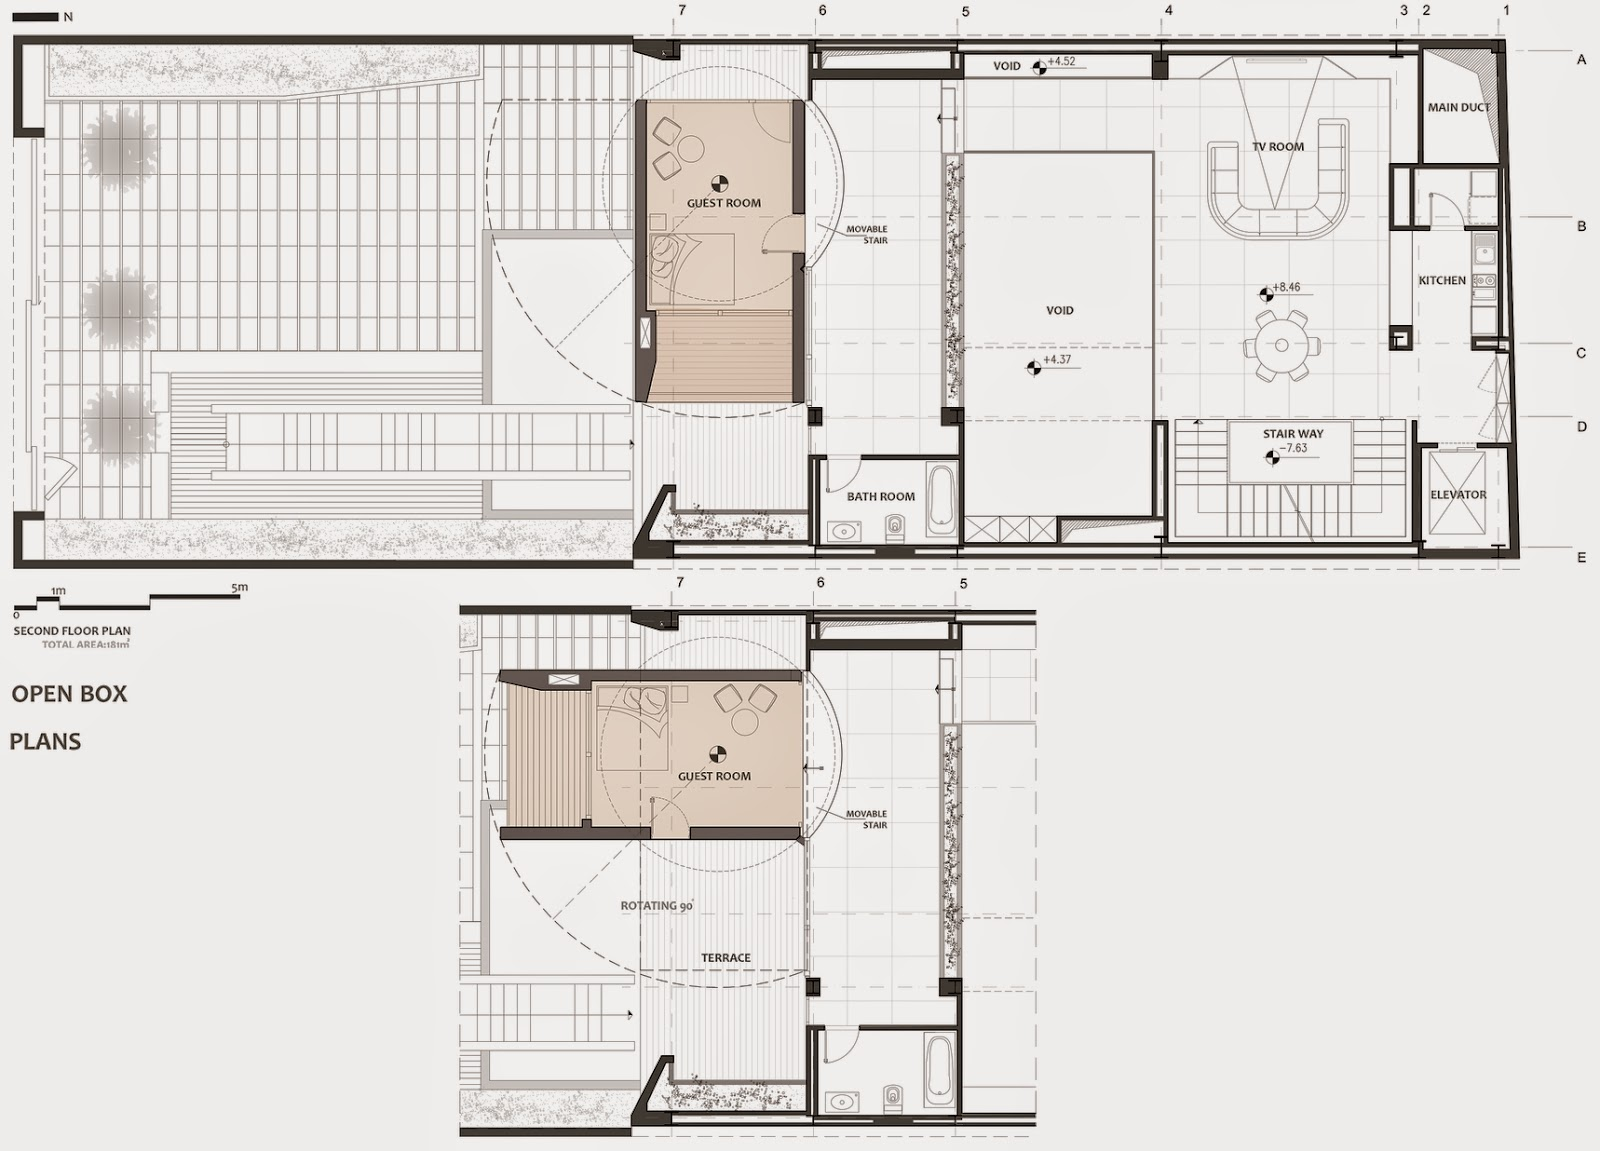 10-Plans-Second-Floor-Plan-Section-Nextoffice-Sharifi-Ha-House-Revolving-Rooms-Architecture-www-designstack-co